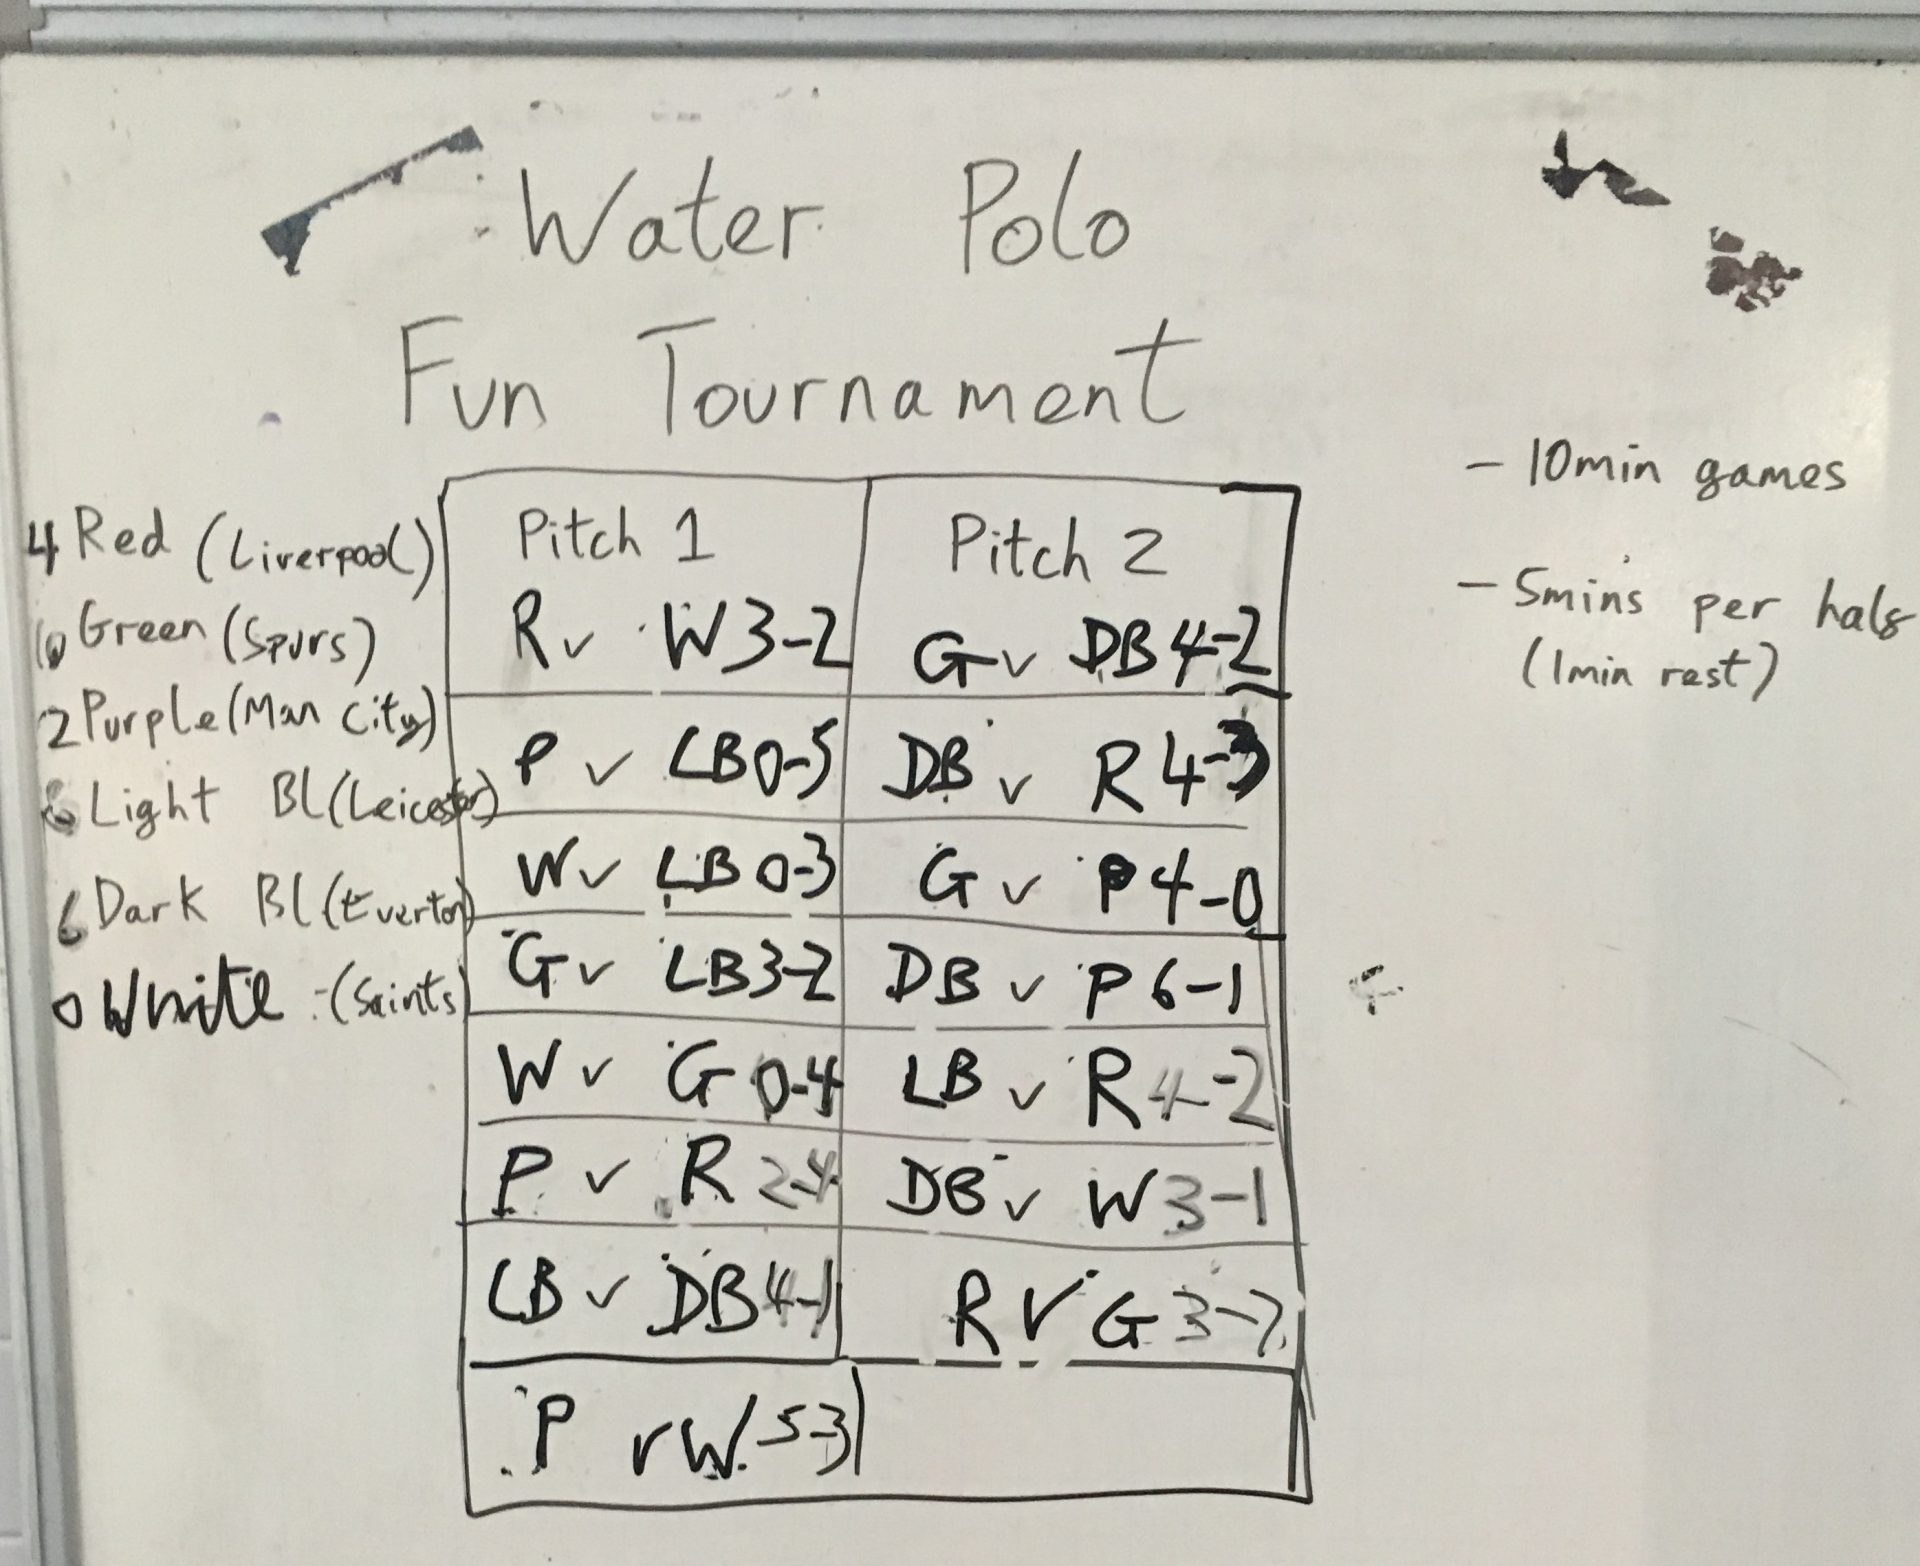 Scoreboard showing team names for the Fun Tournament